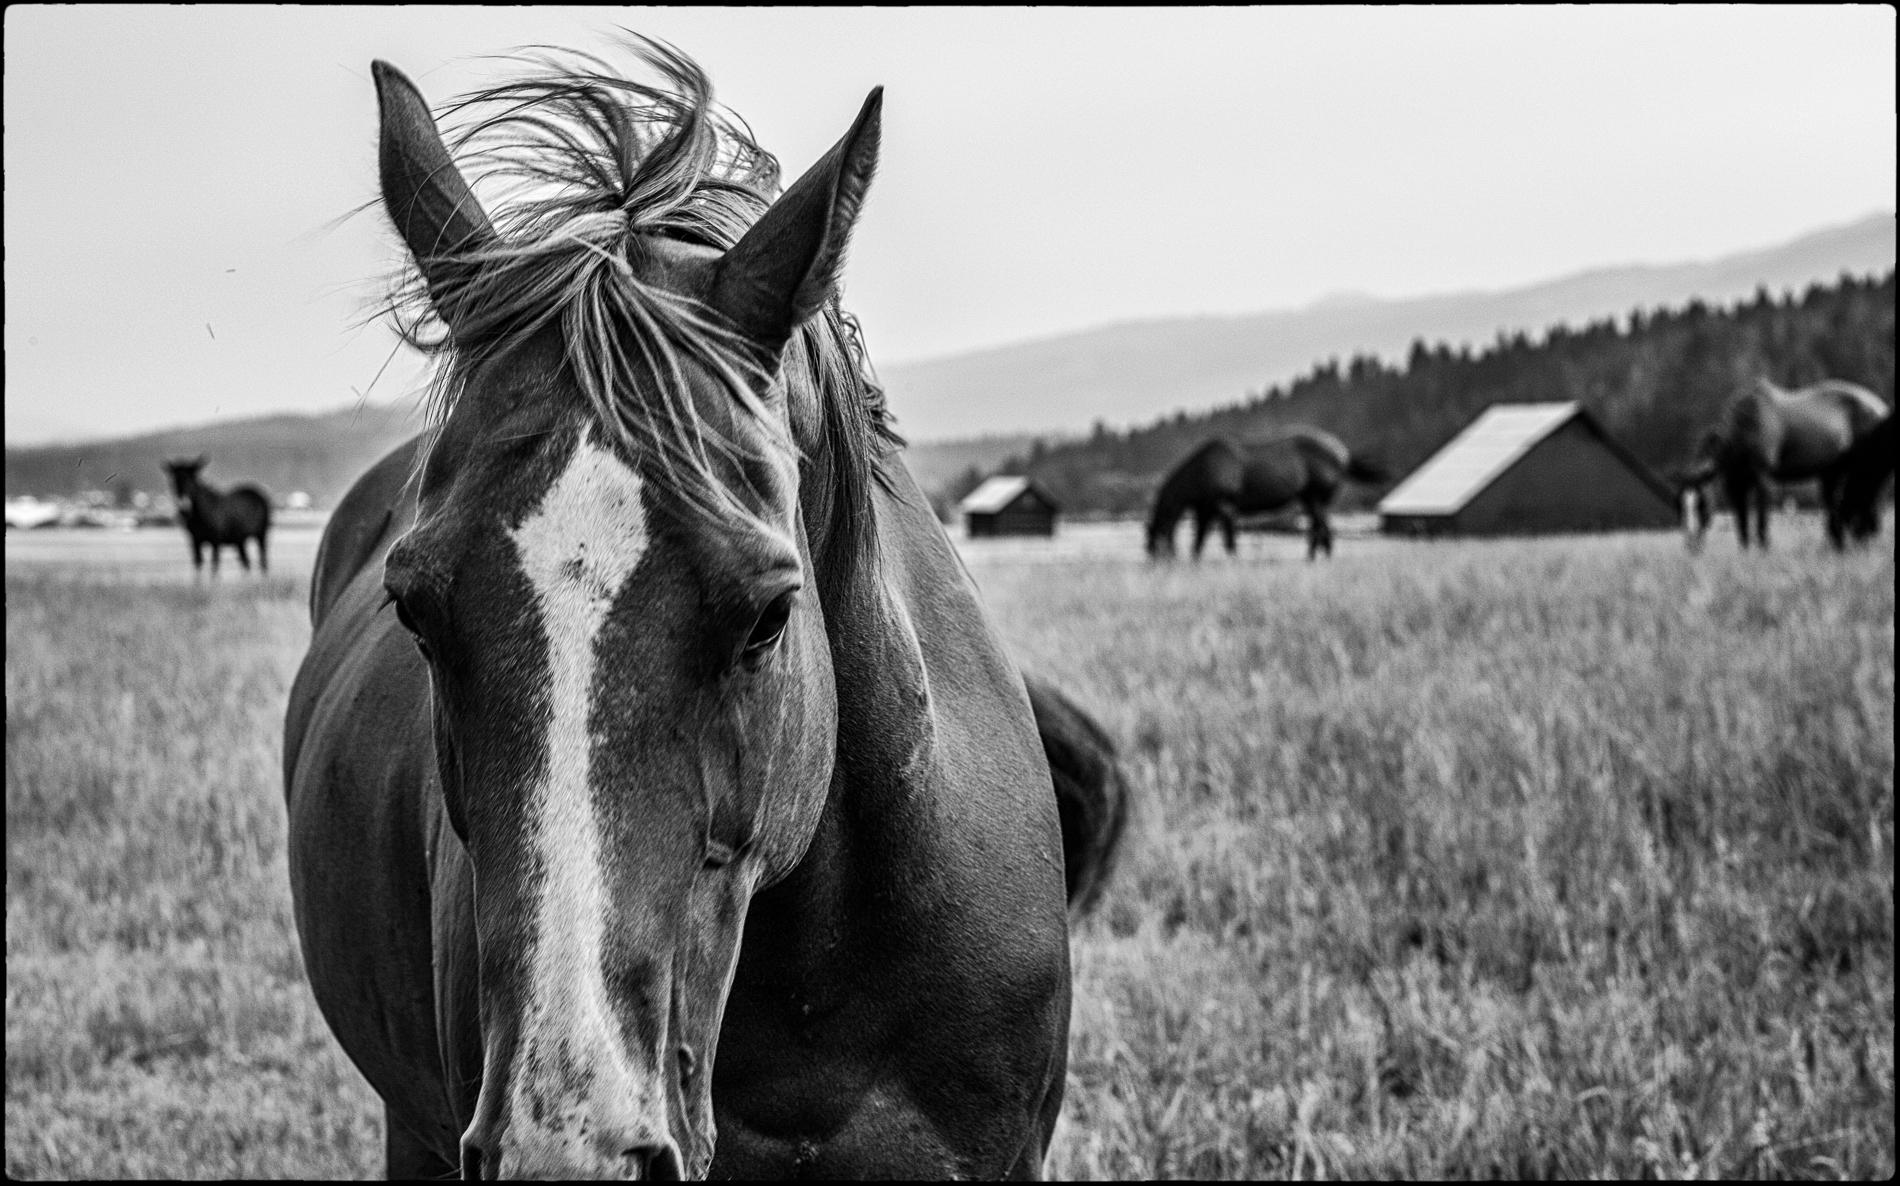 Near Cascade, Idaho : equus et al : TIMOTHY FLOYD PHOTOGRAPHER, NATURE PHOTOGRAPHY, PHOTO ESSAYS, PHOTOJOURNALISM